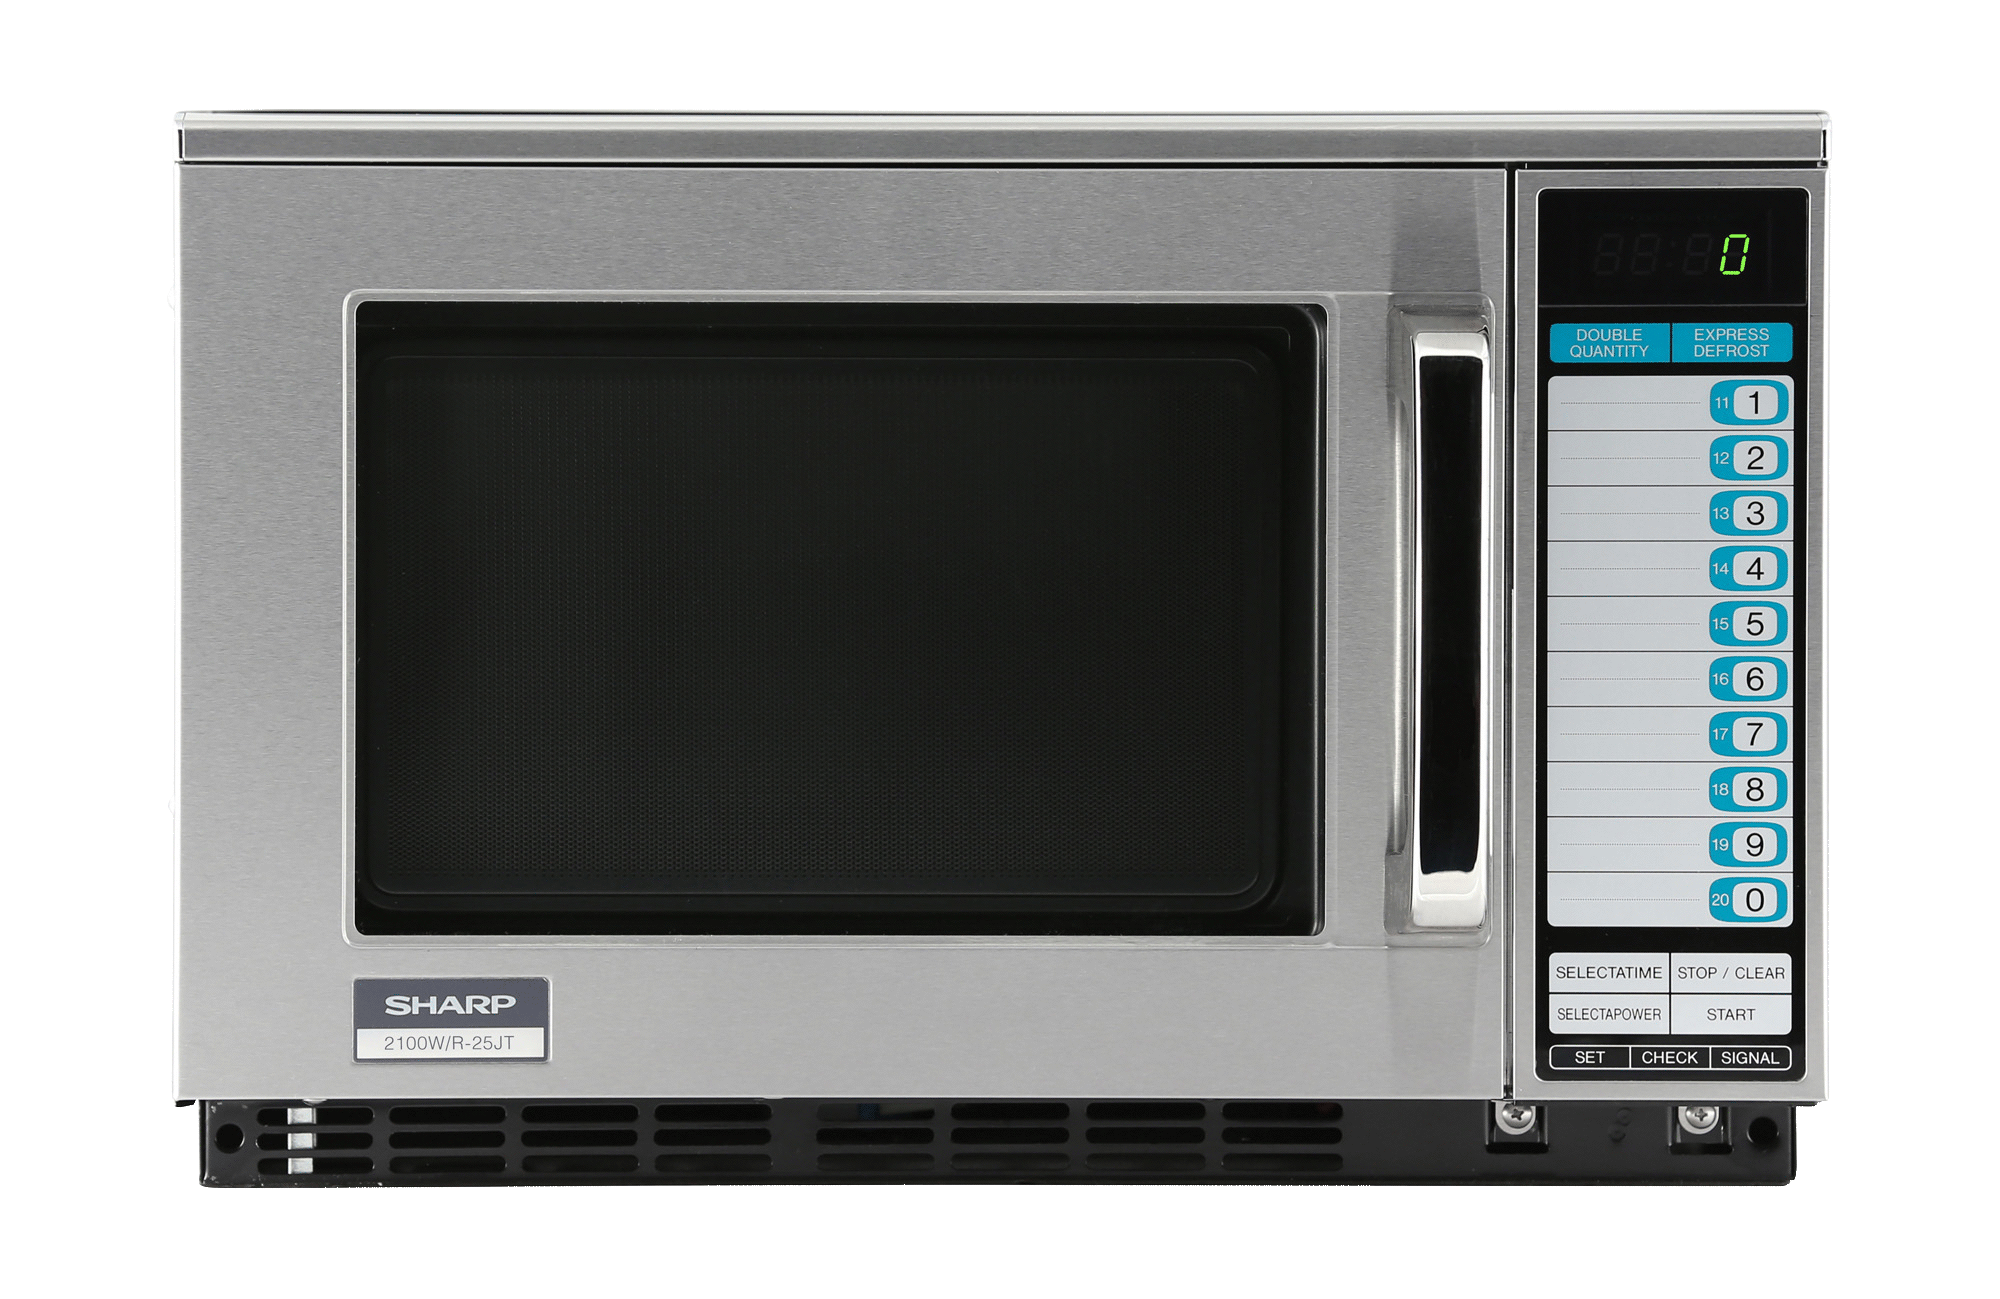 Heavy Duty Commercial Microwave With 2100 Watts